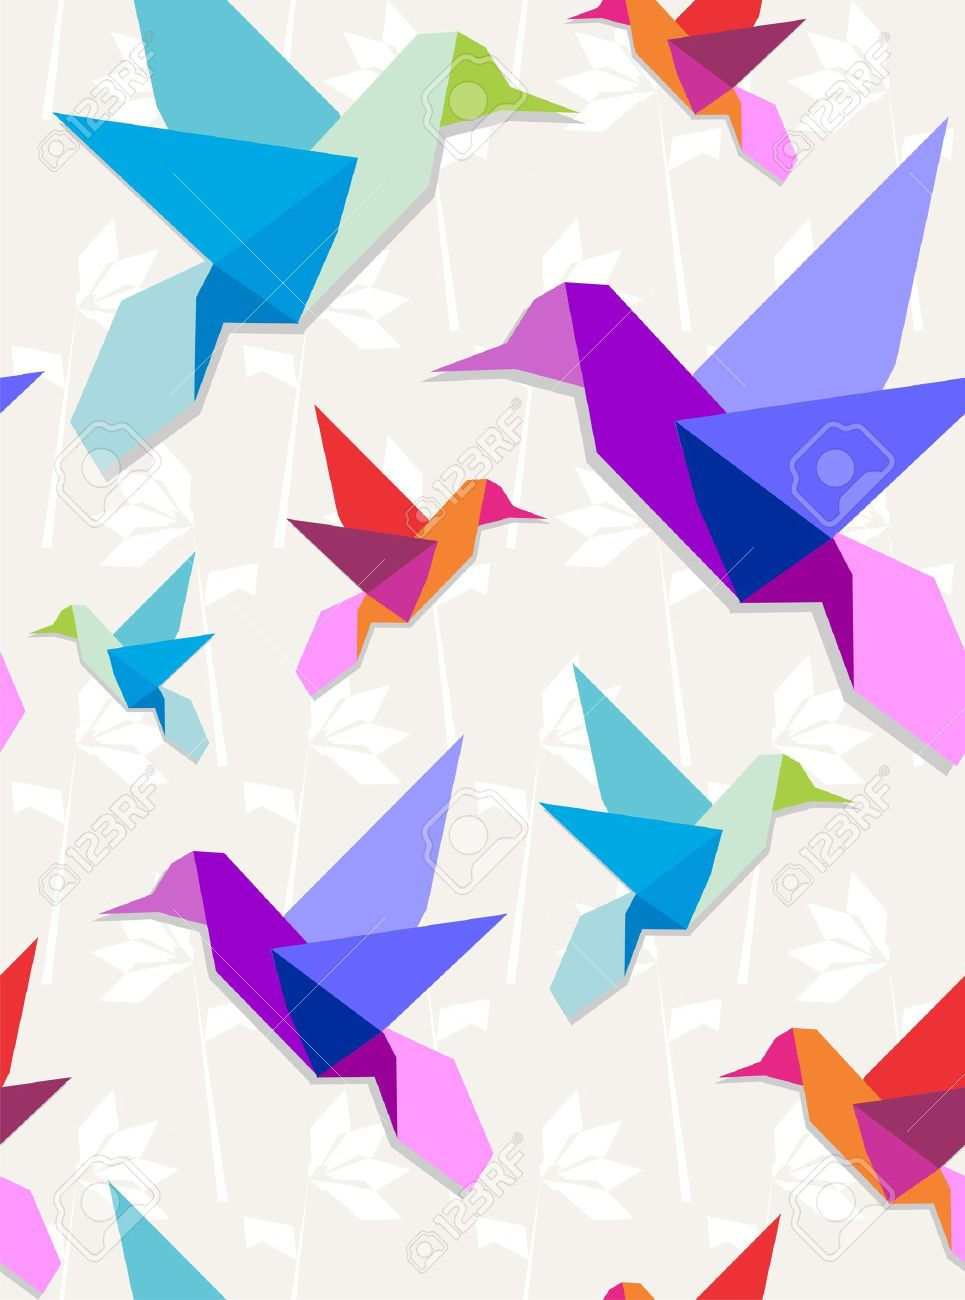 Pastel colors origami hummingbirds seamless pattern background. Stock Vector - 11076091